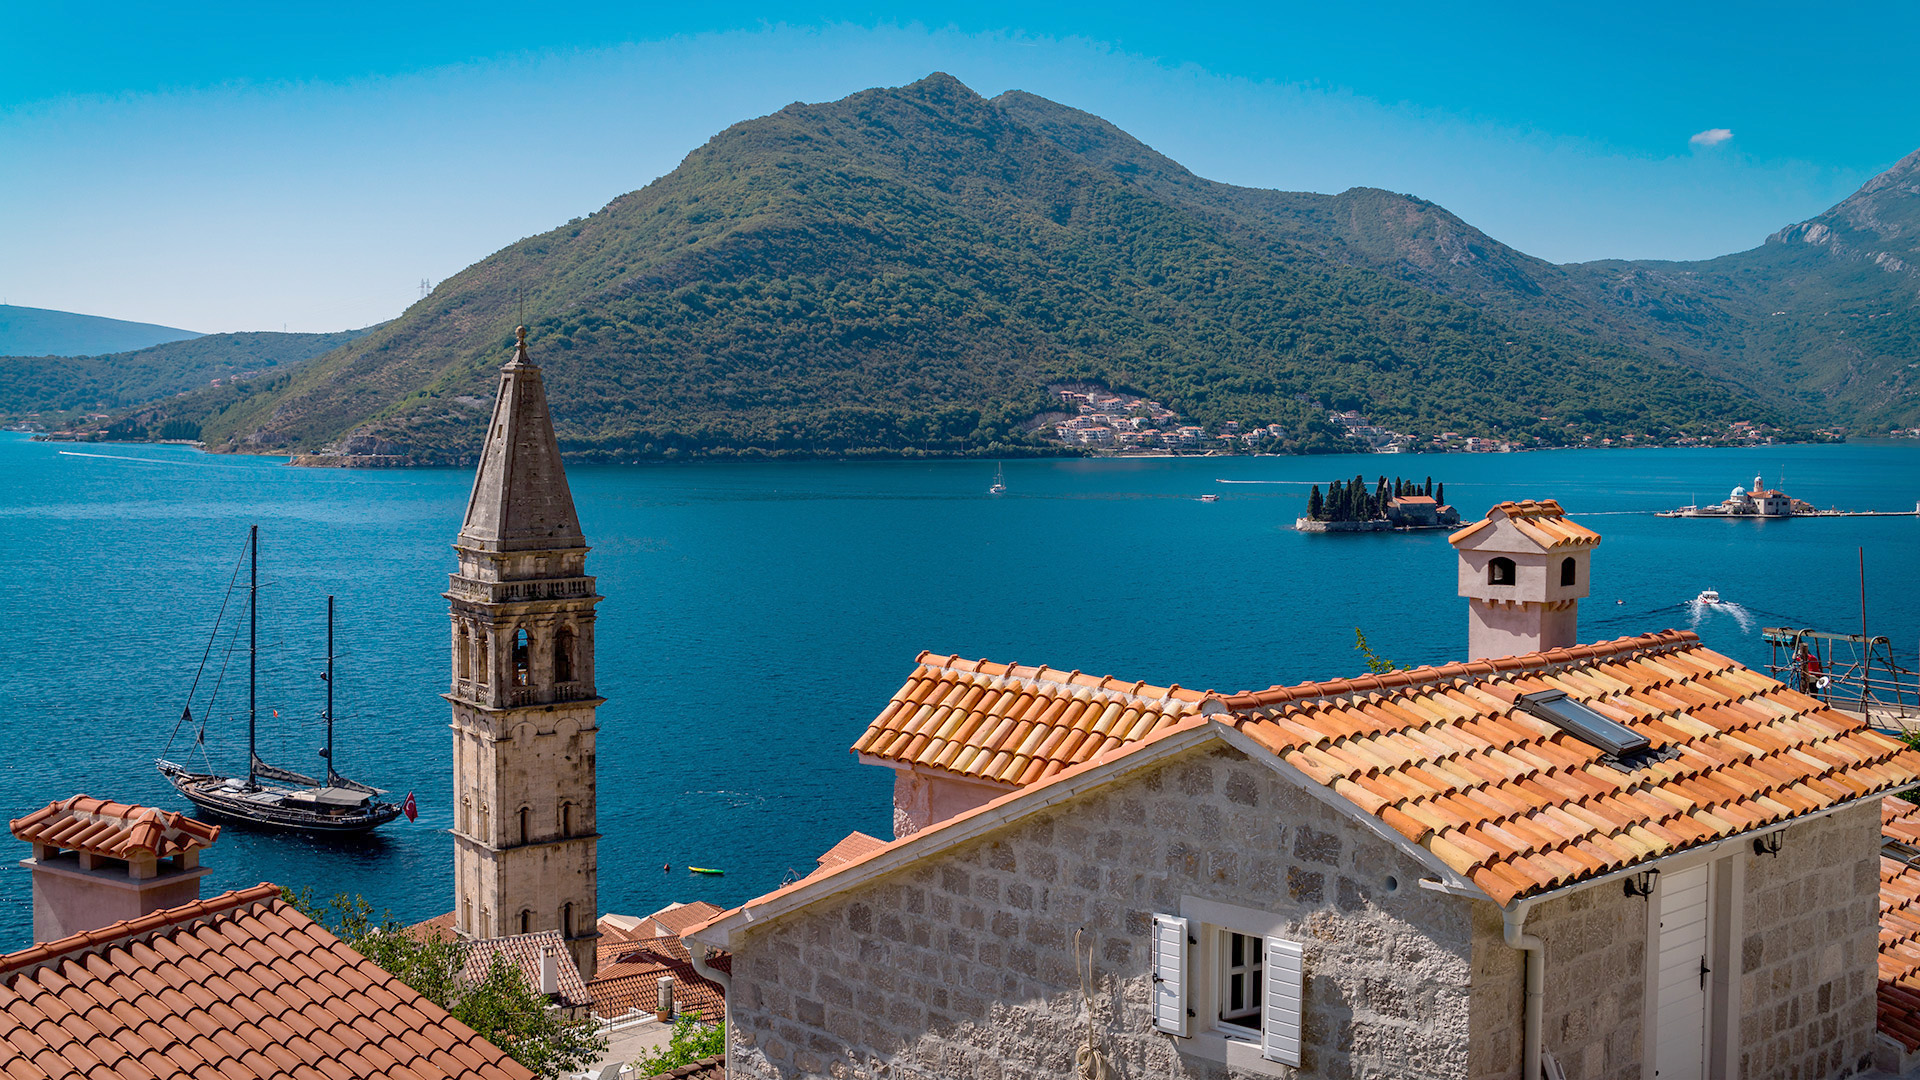 Islands in the Bay of Kotor, Perast, Montenegro